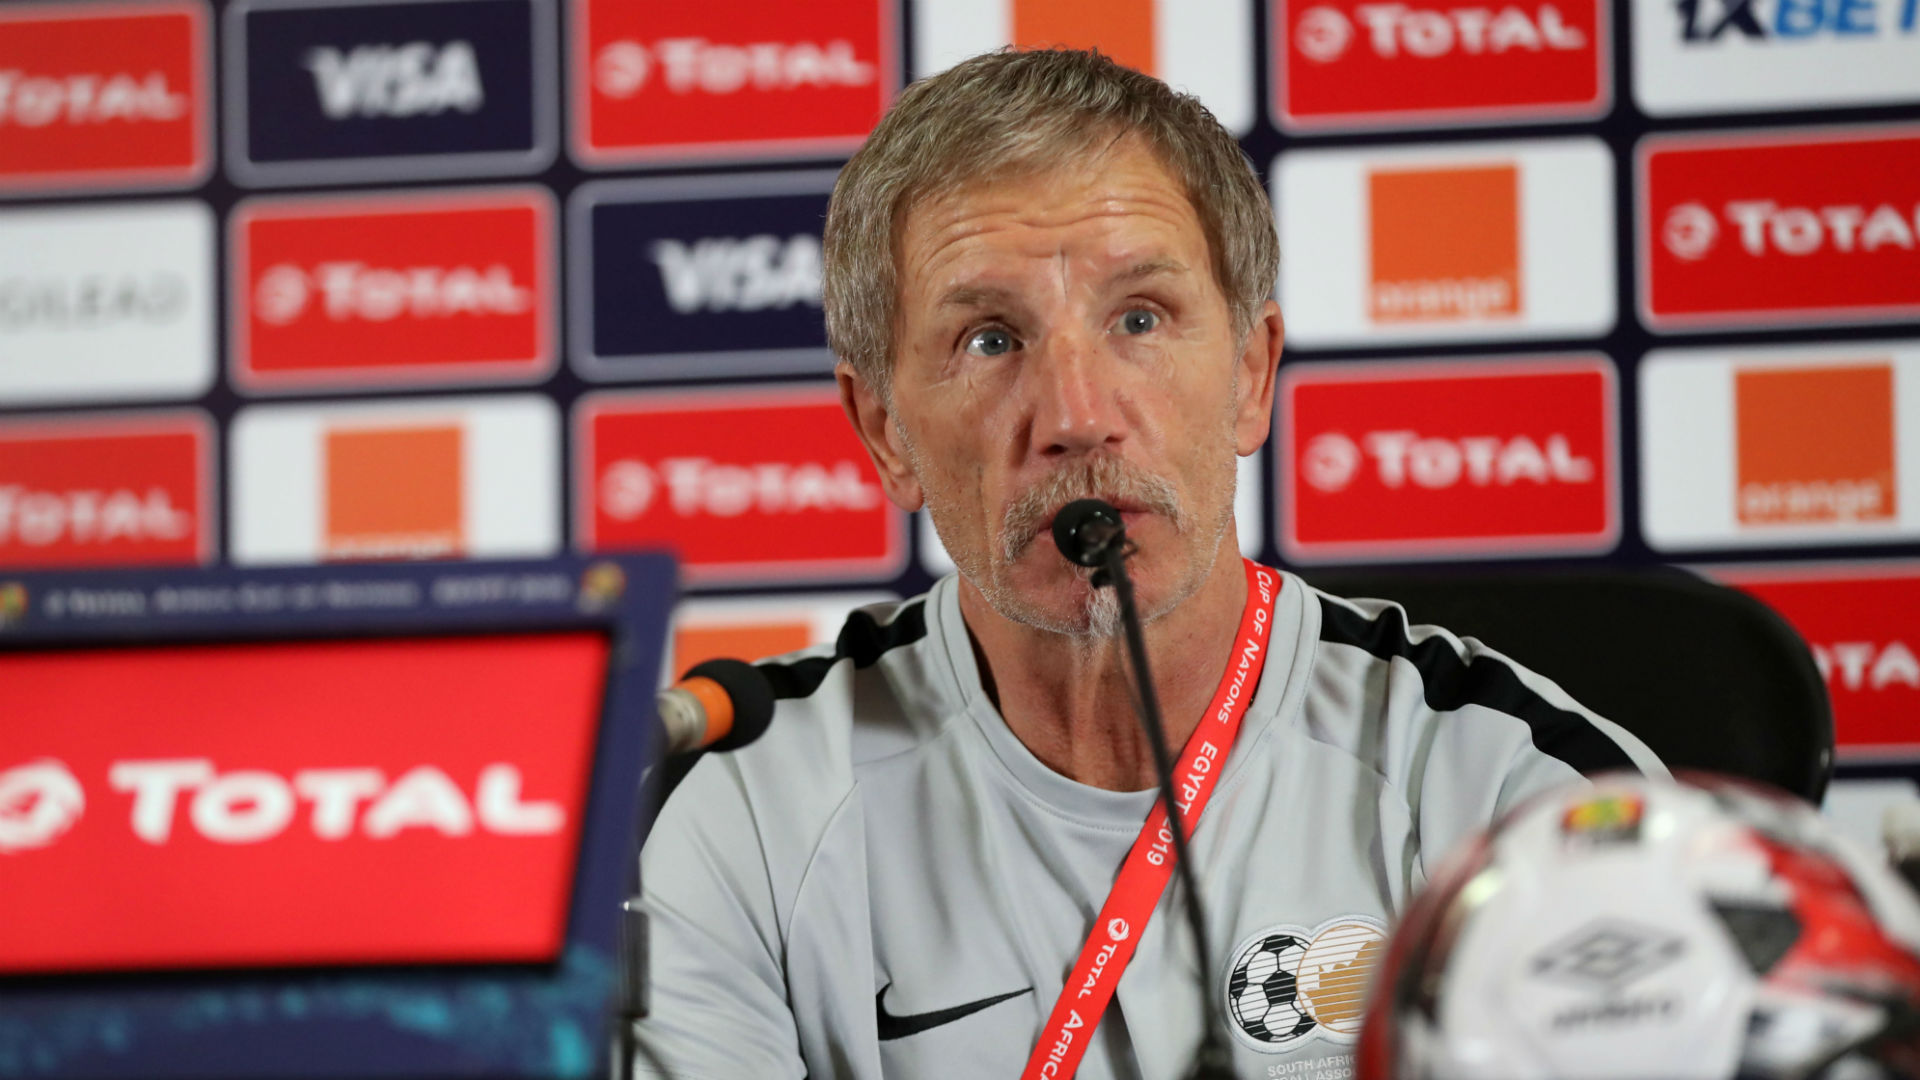 Afcon 2019: One game doesn't make Bafana Bafana favourites - Baxter